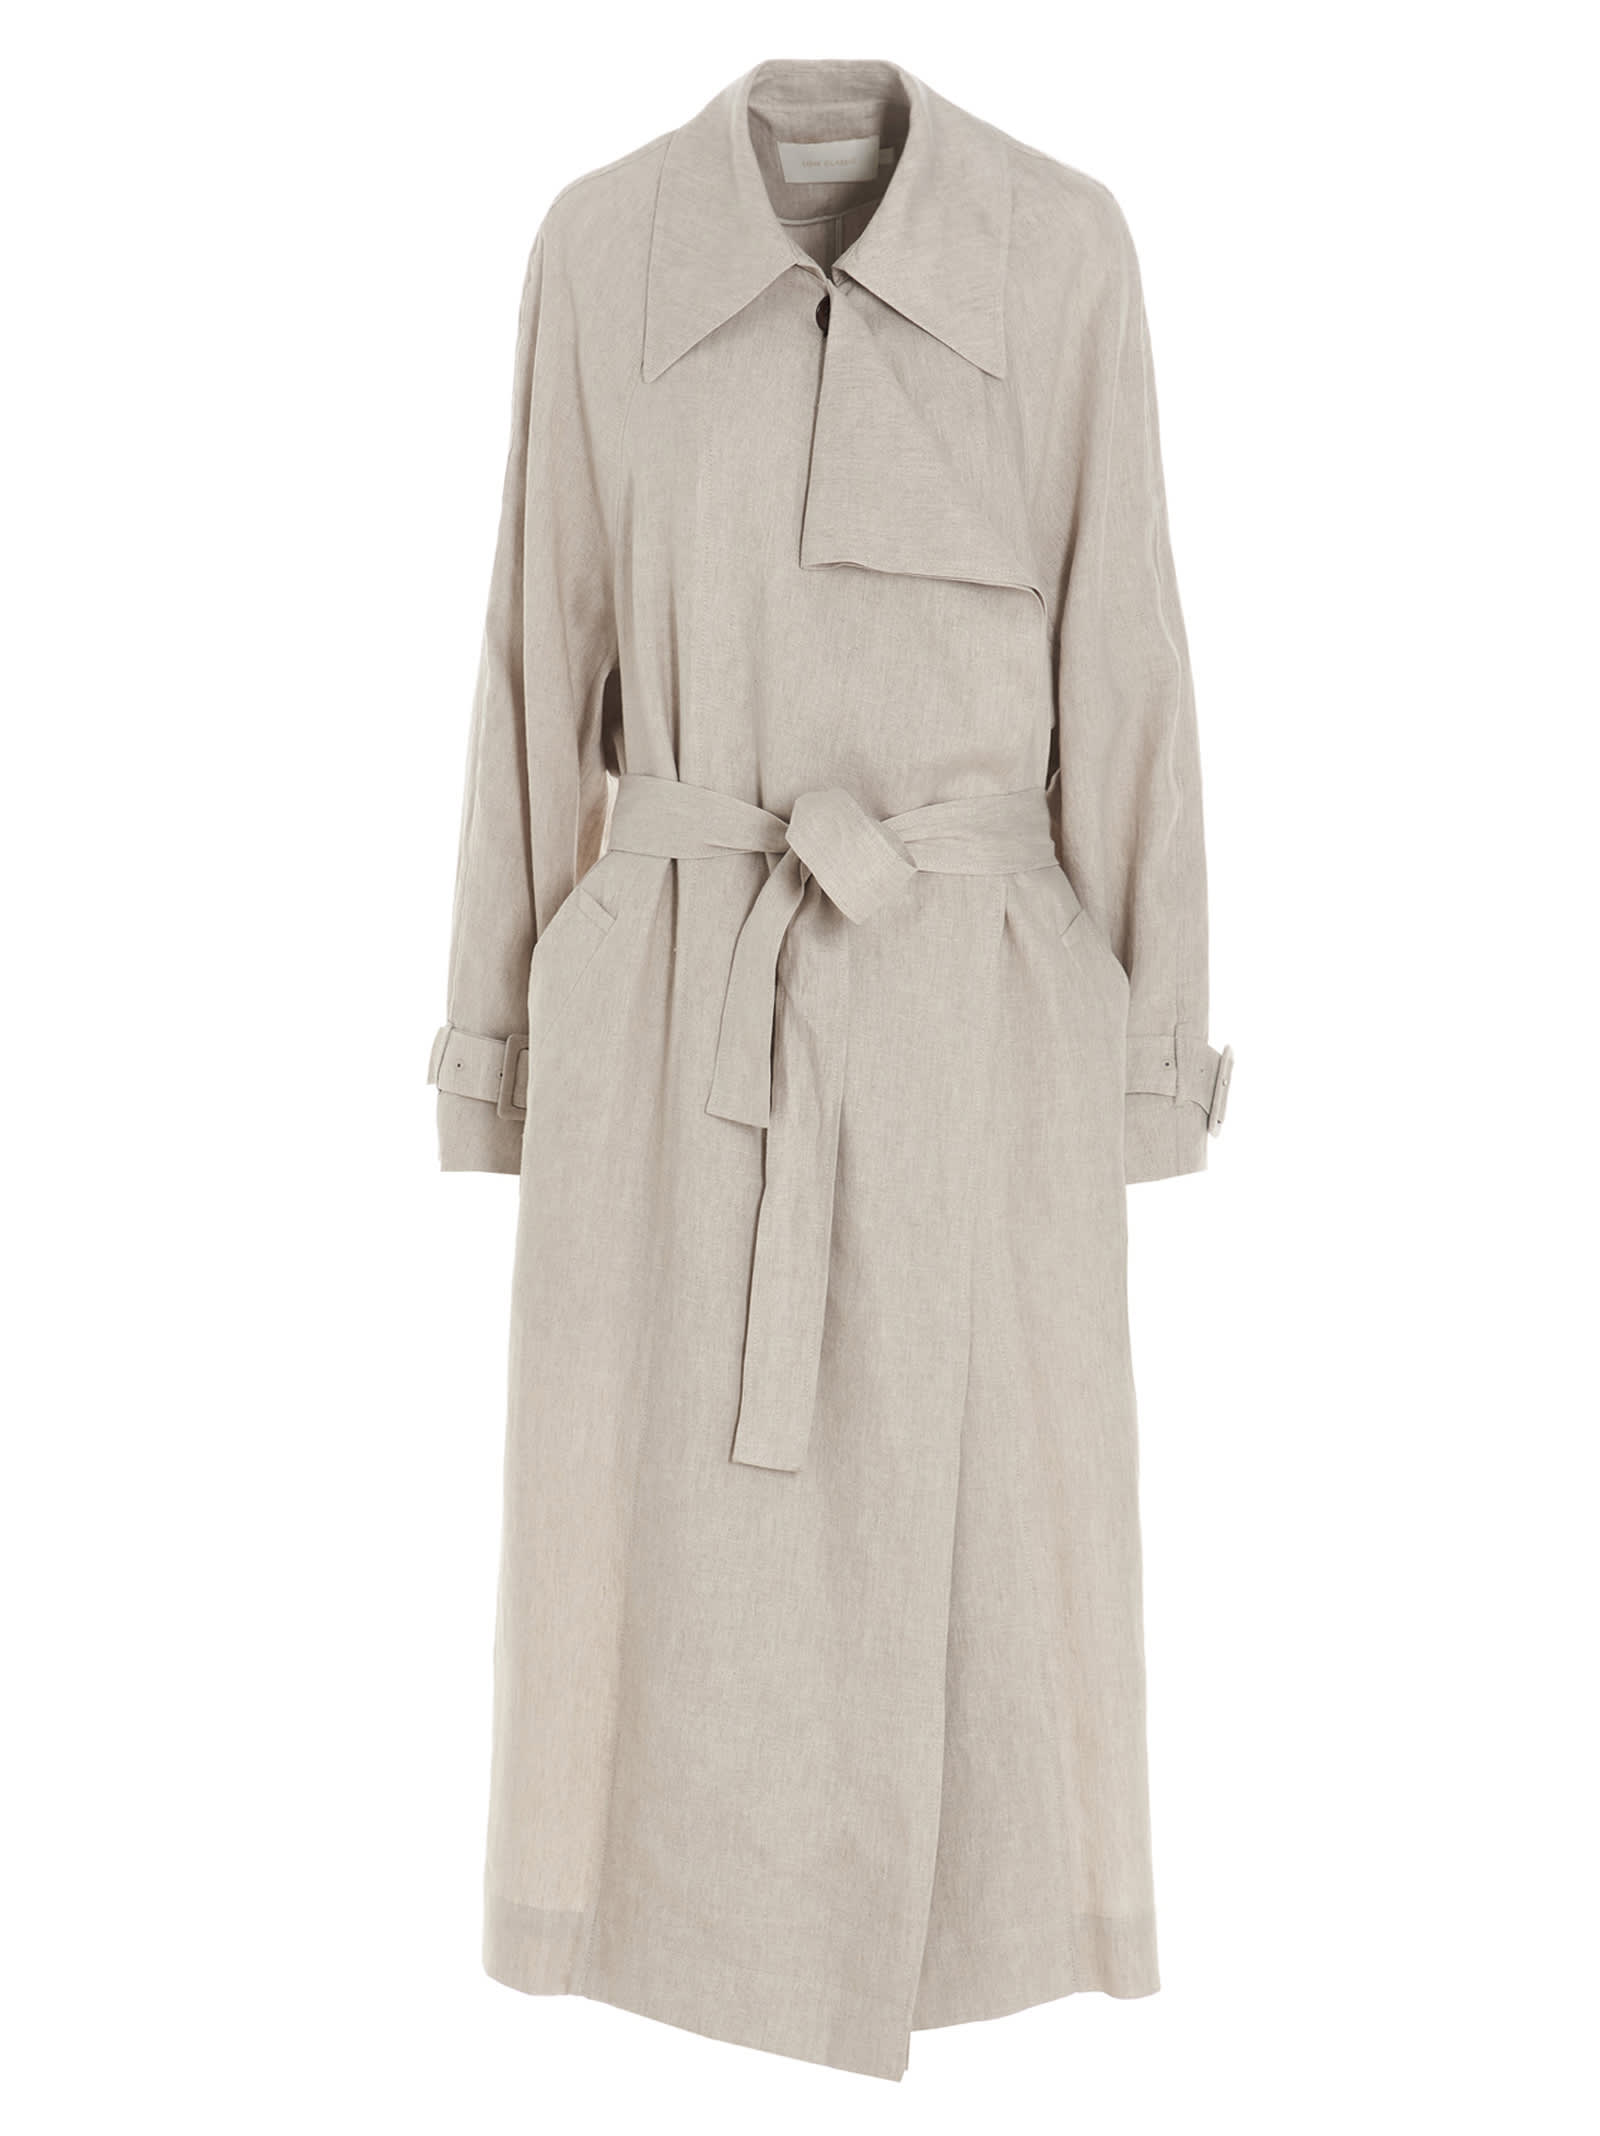 Low Classic Linens TRENCH